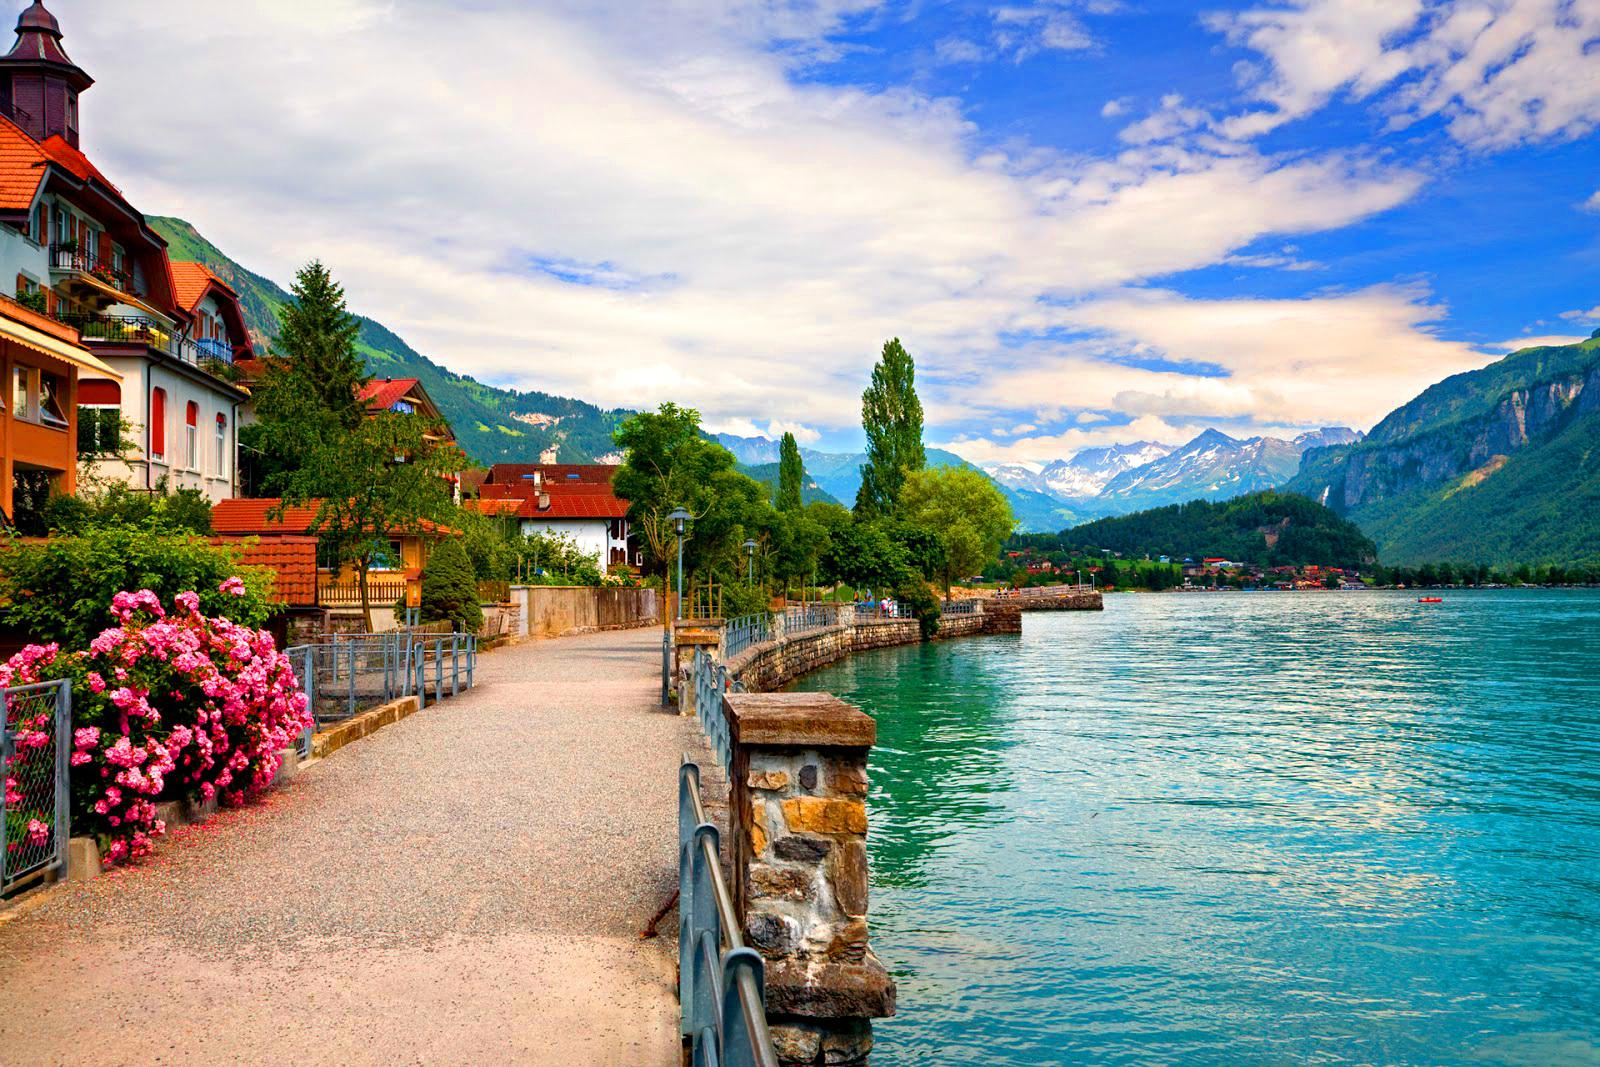 swiss lakeside town wallpaper and background image | 1600x1067 | id